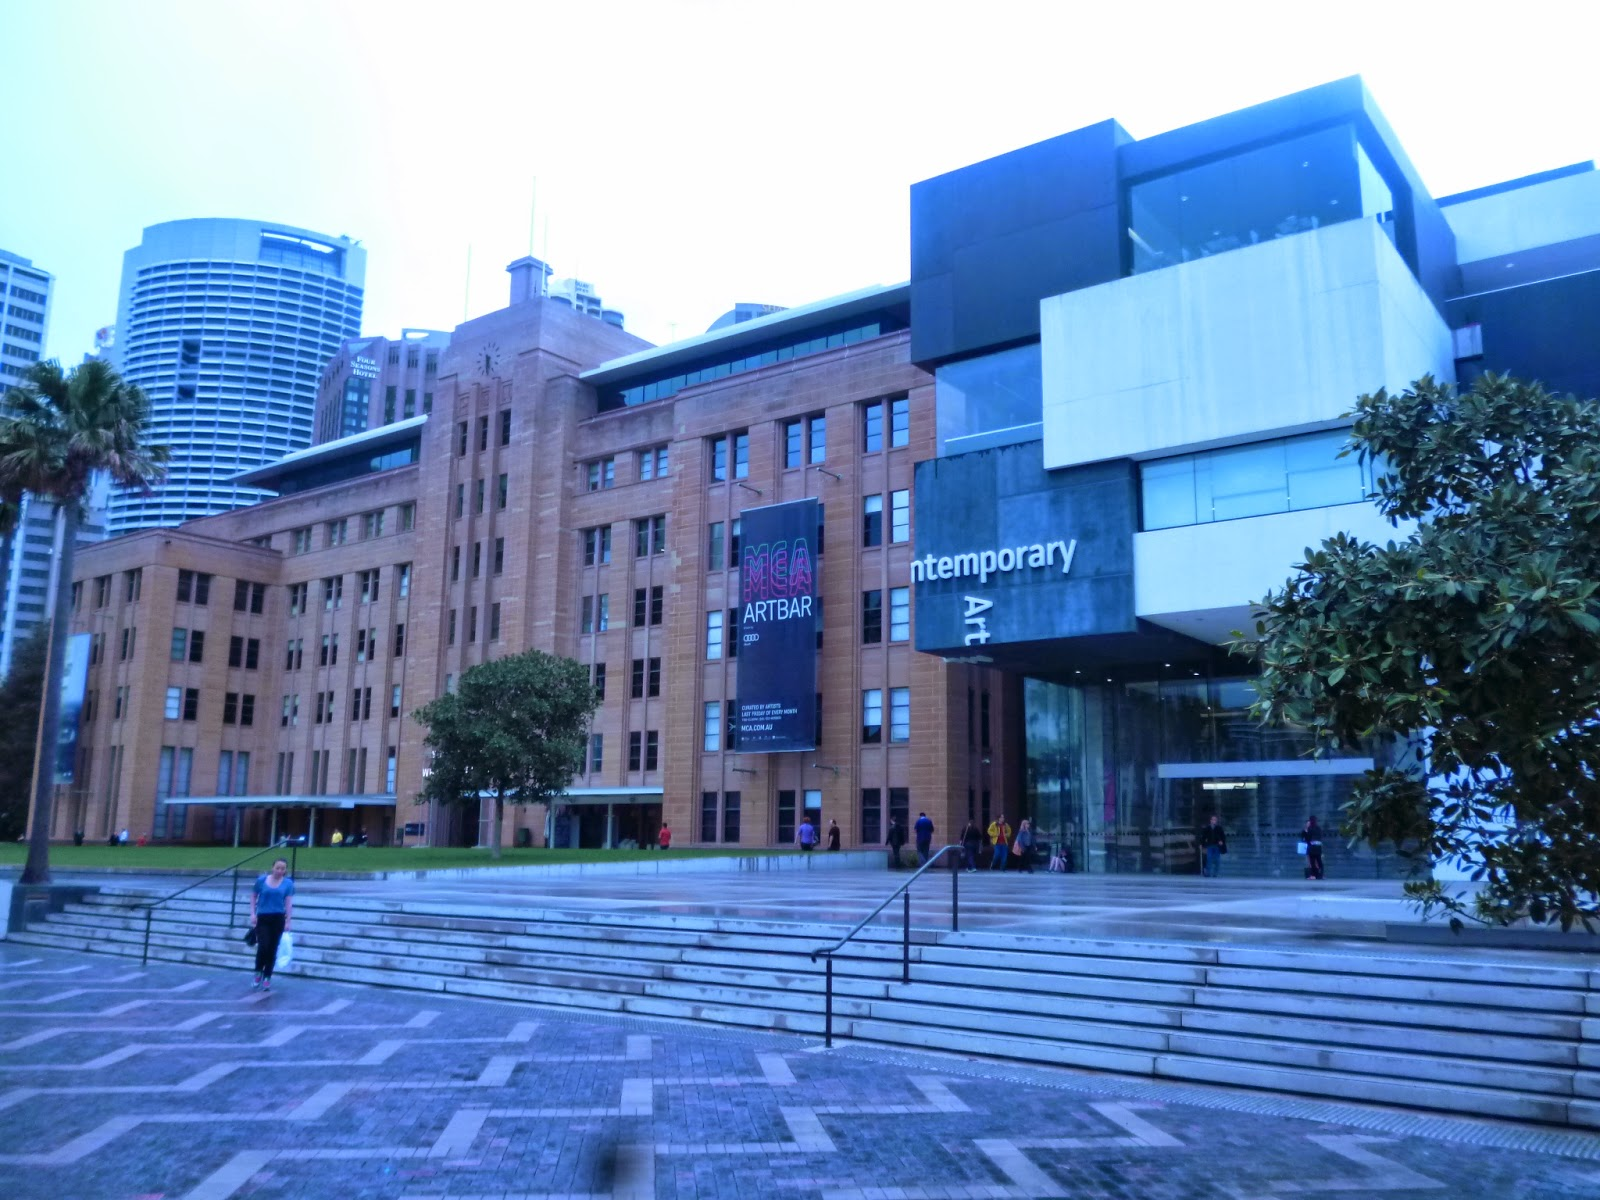 Australian Museum of Contemporary Art